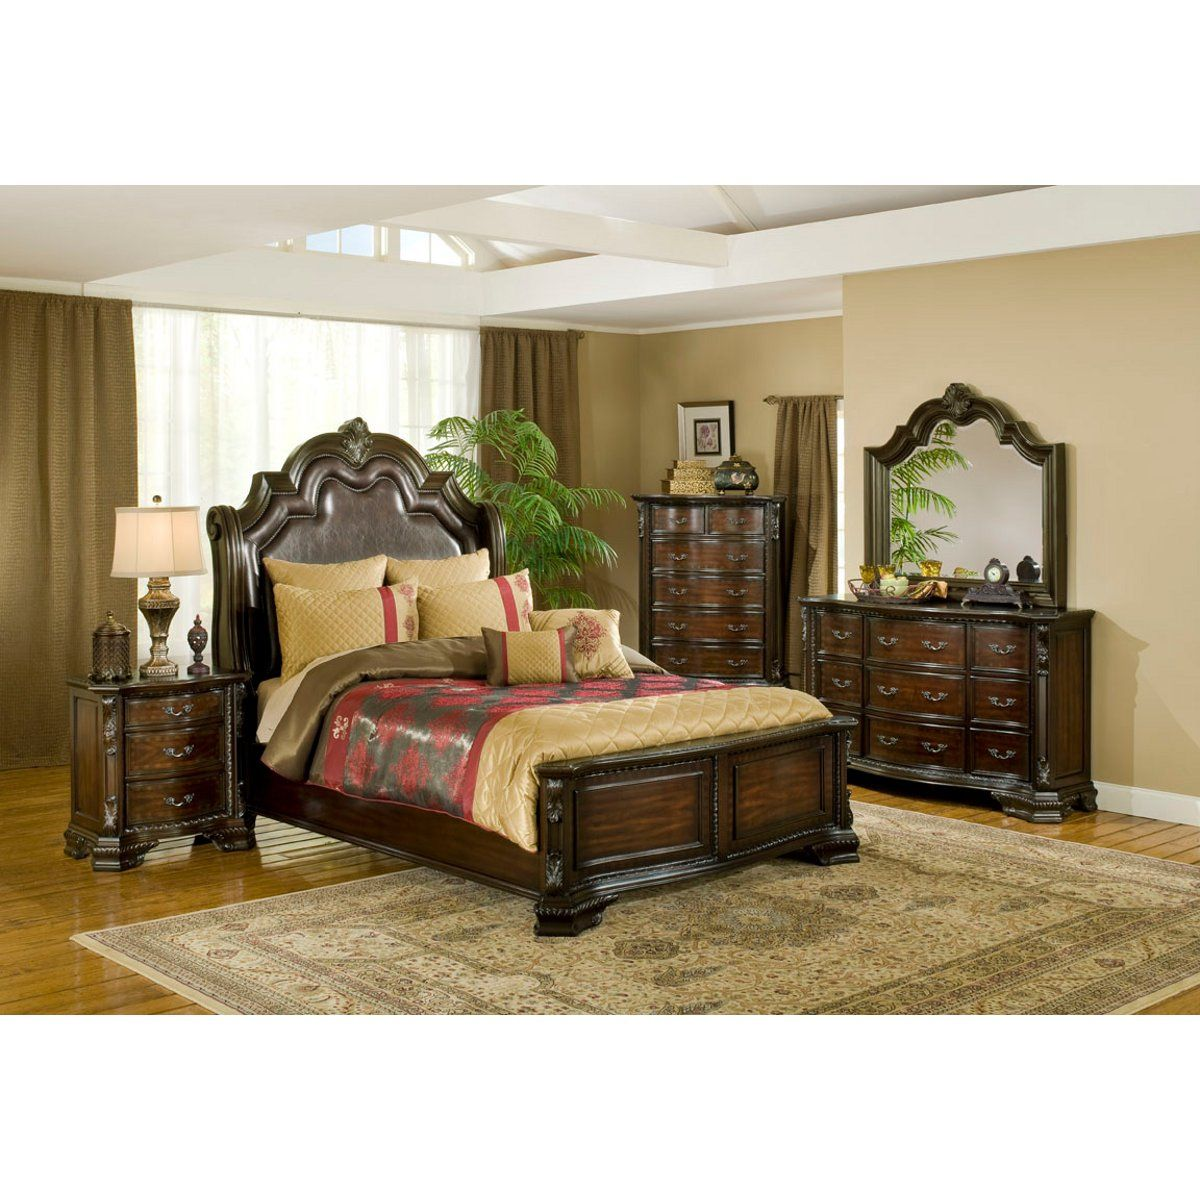 Gentil Bedroom Furniture El Paso   Best Interior Wall Paint Check More At  Http://www.magic009.com/bedroom Furniture El Paso/